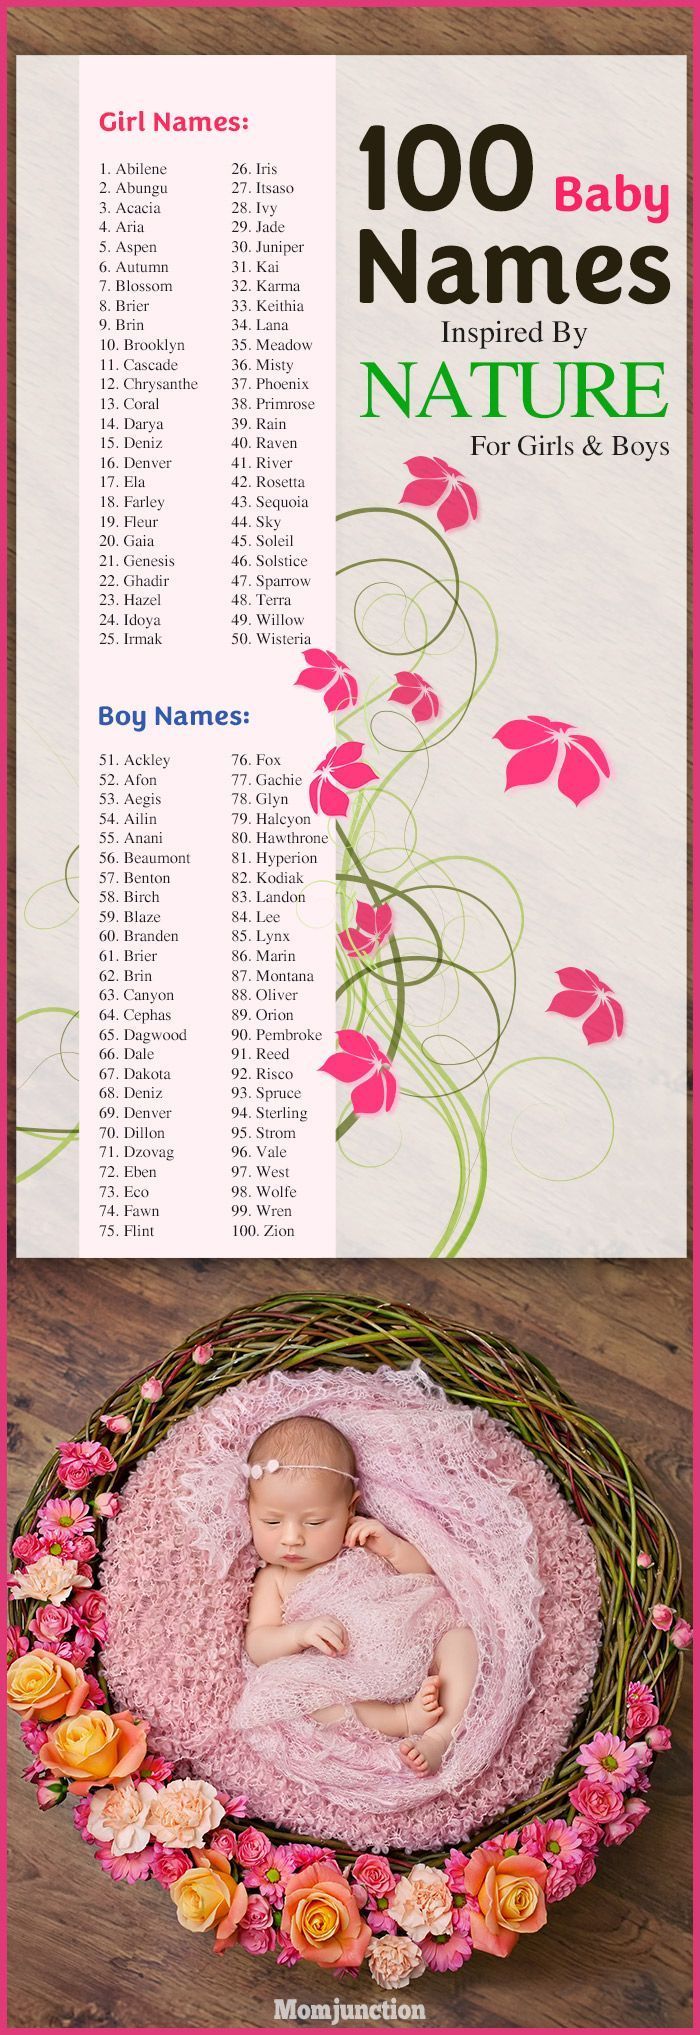 Nature Baby Names 100 Wondrous Nature Names For Girls And